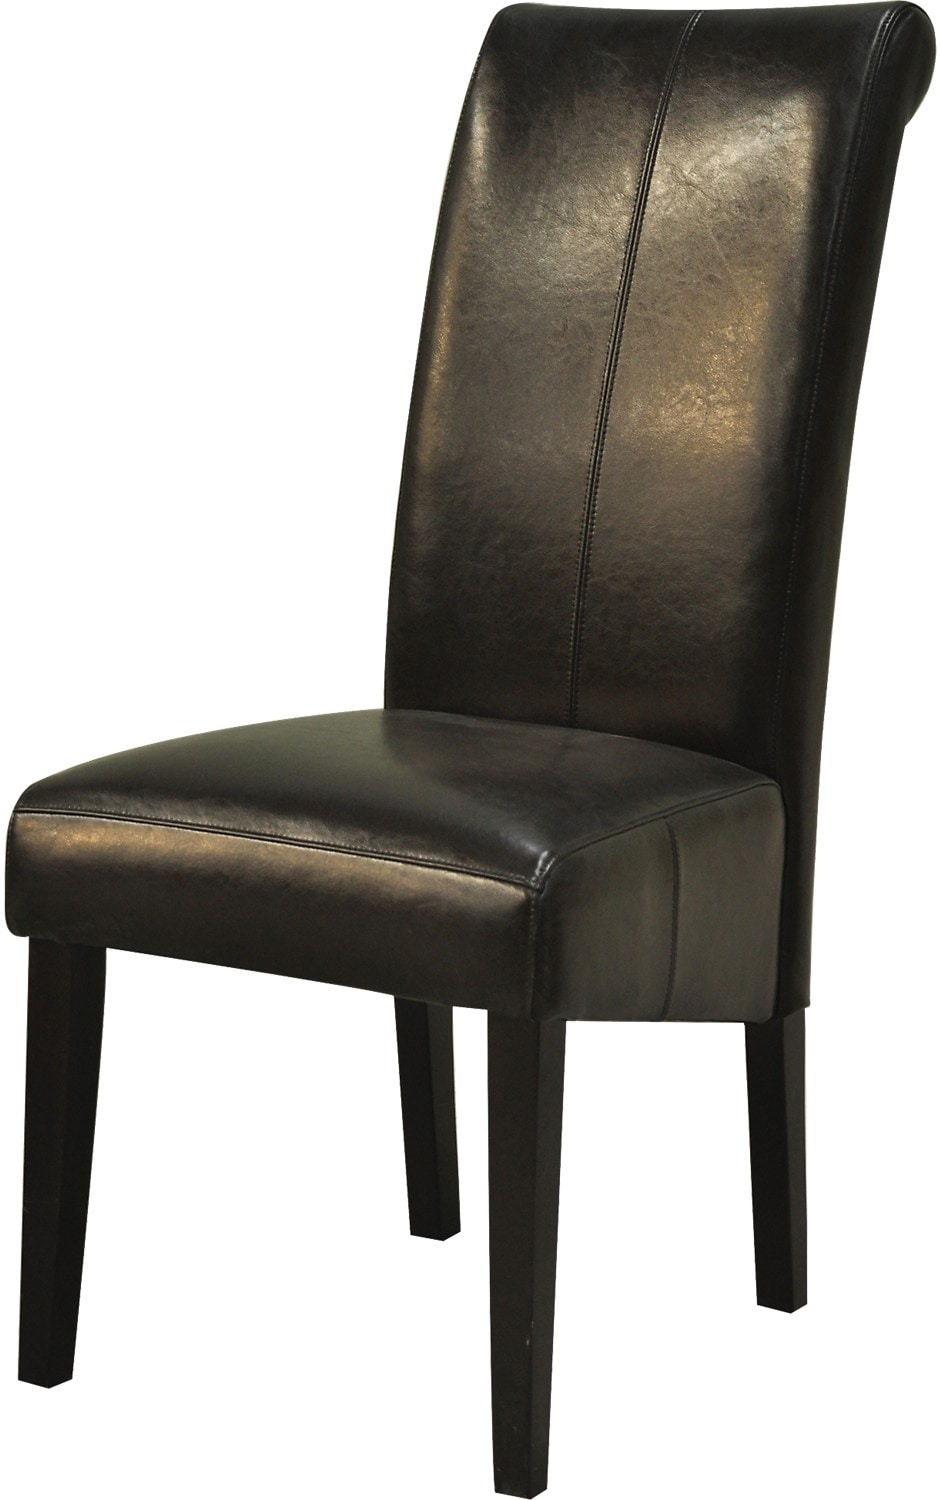 Dining Room Furniture - Dining Chair - Brown